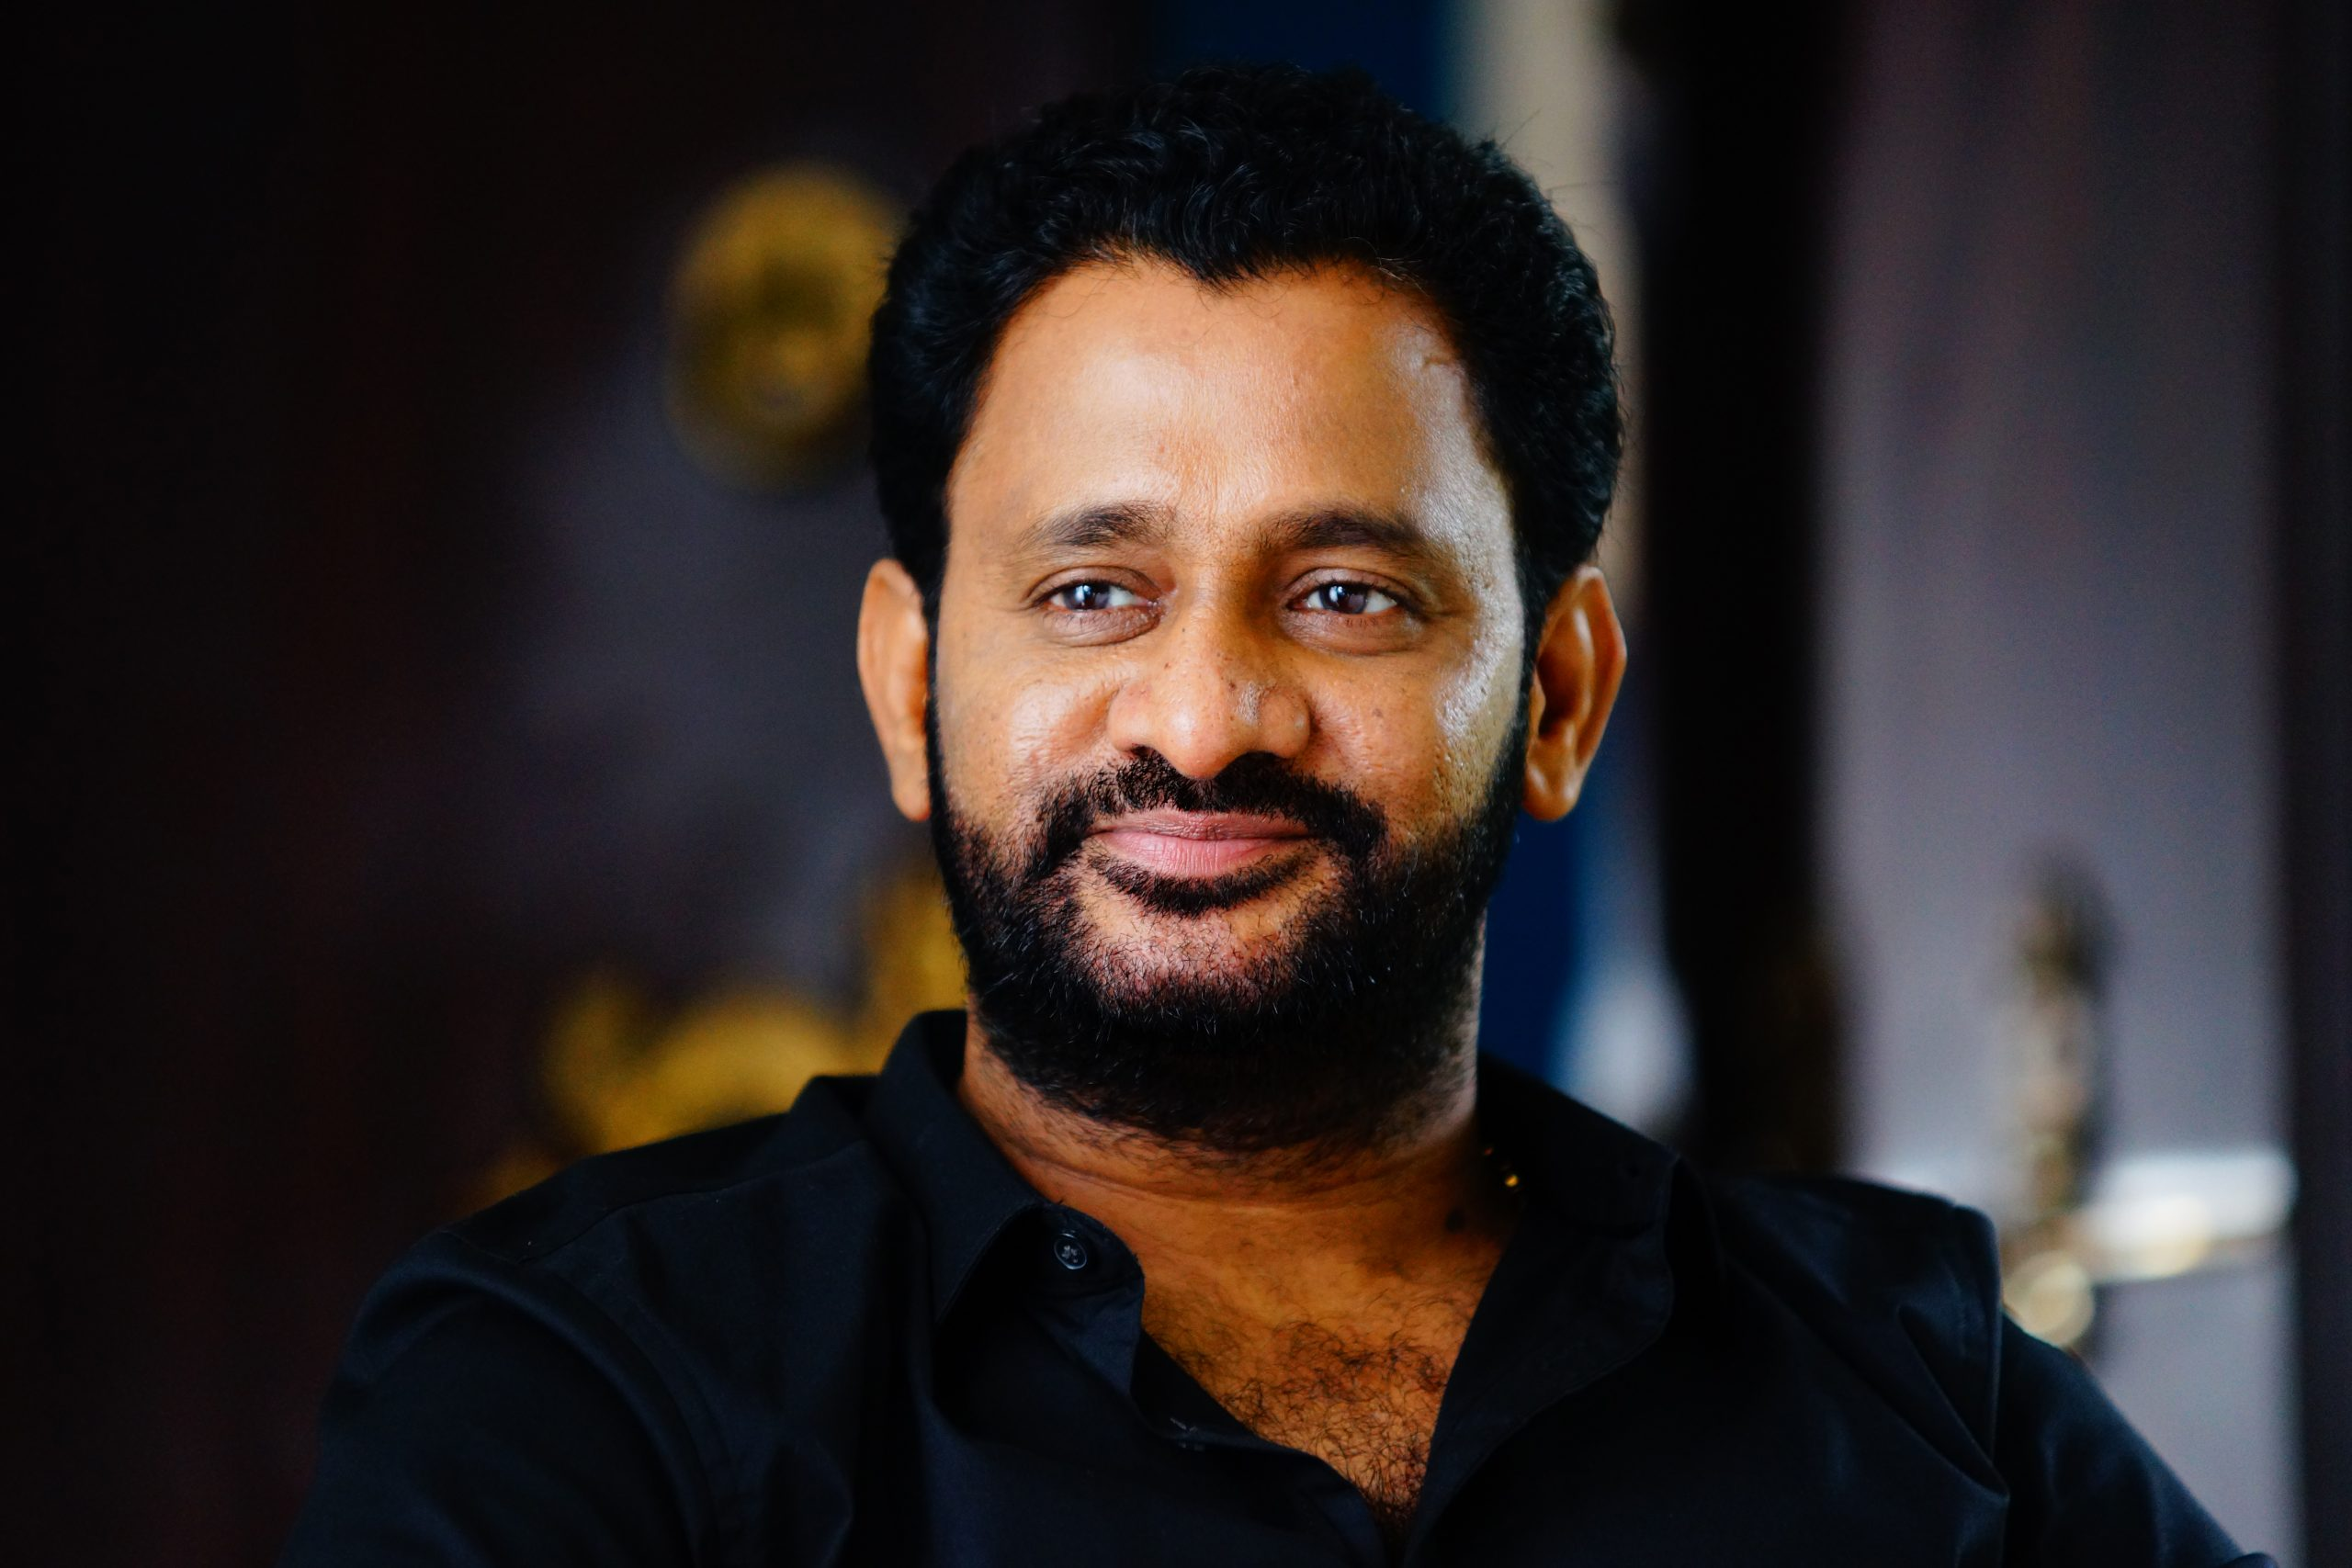 BELIEF: Resul Pookutty